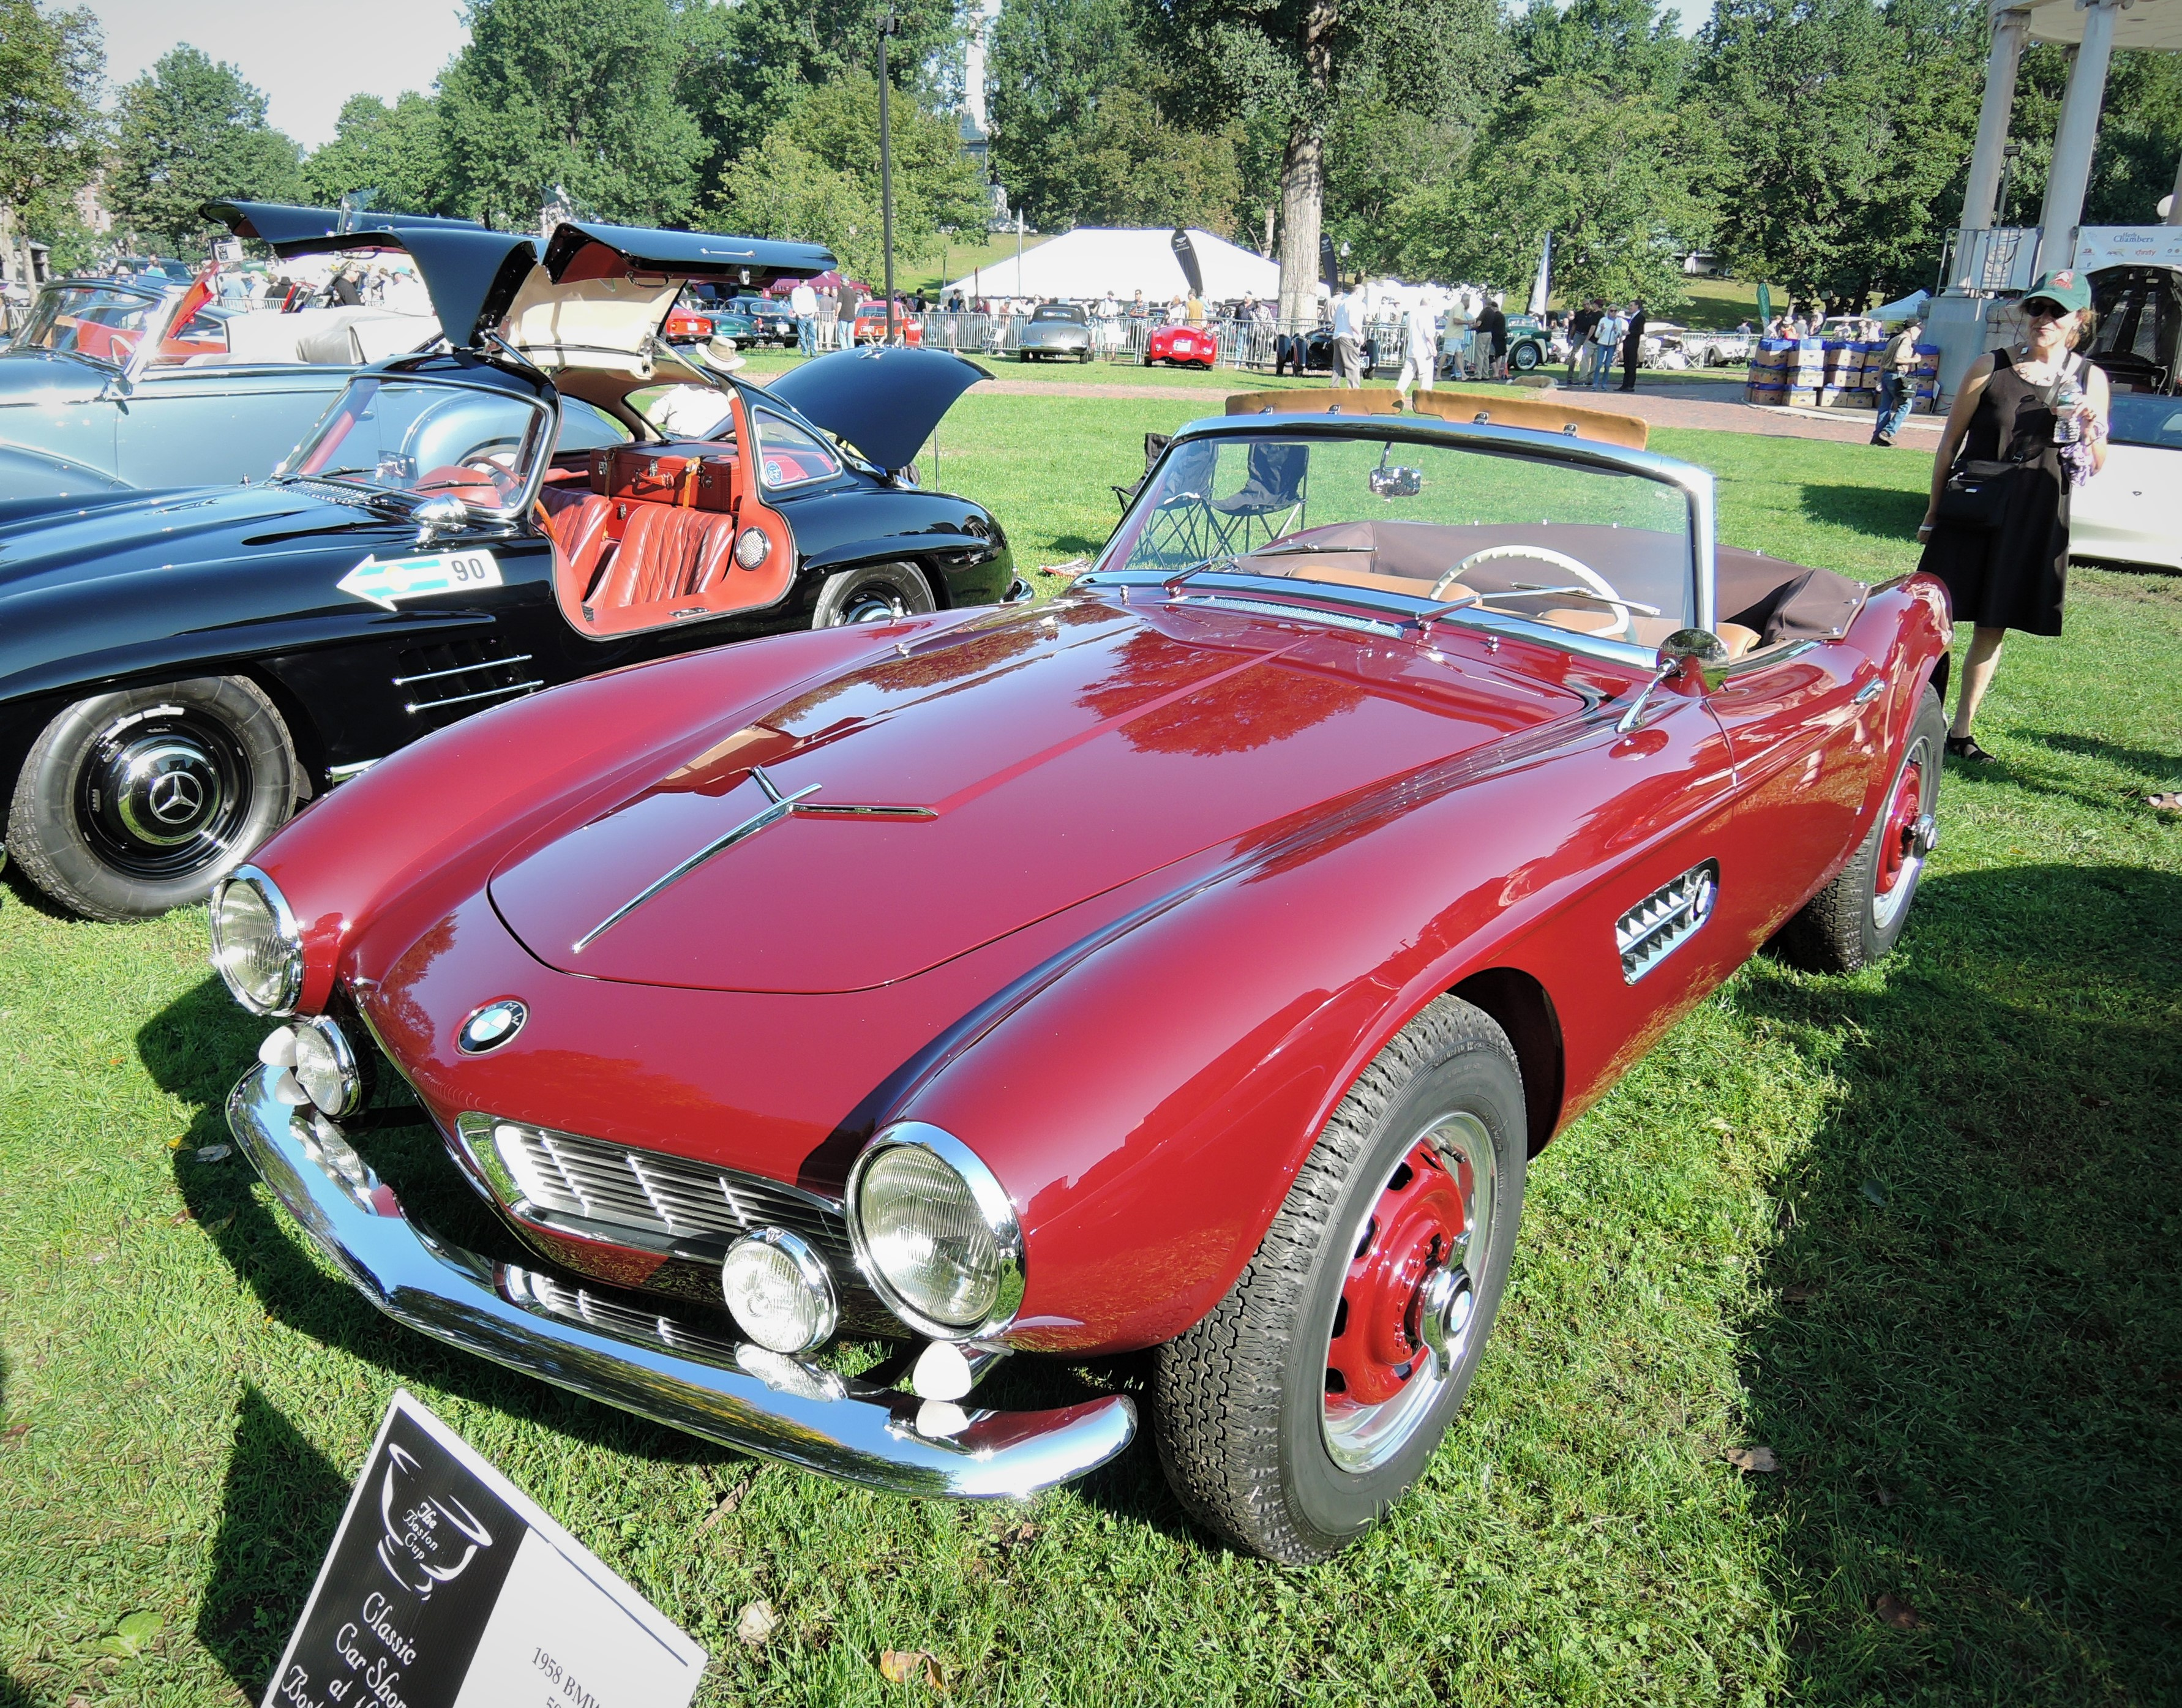 dark red 1958 BMW 507 - The Boston Cup 2017